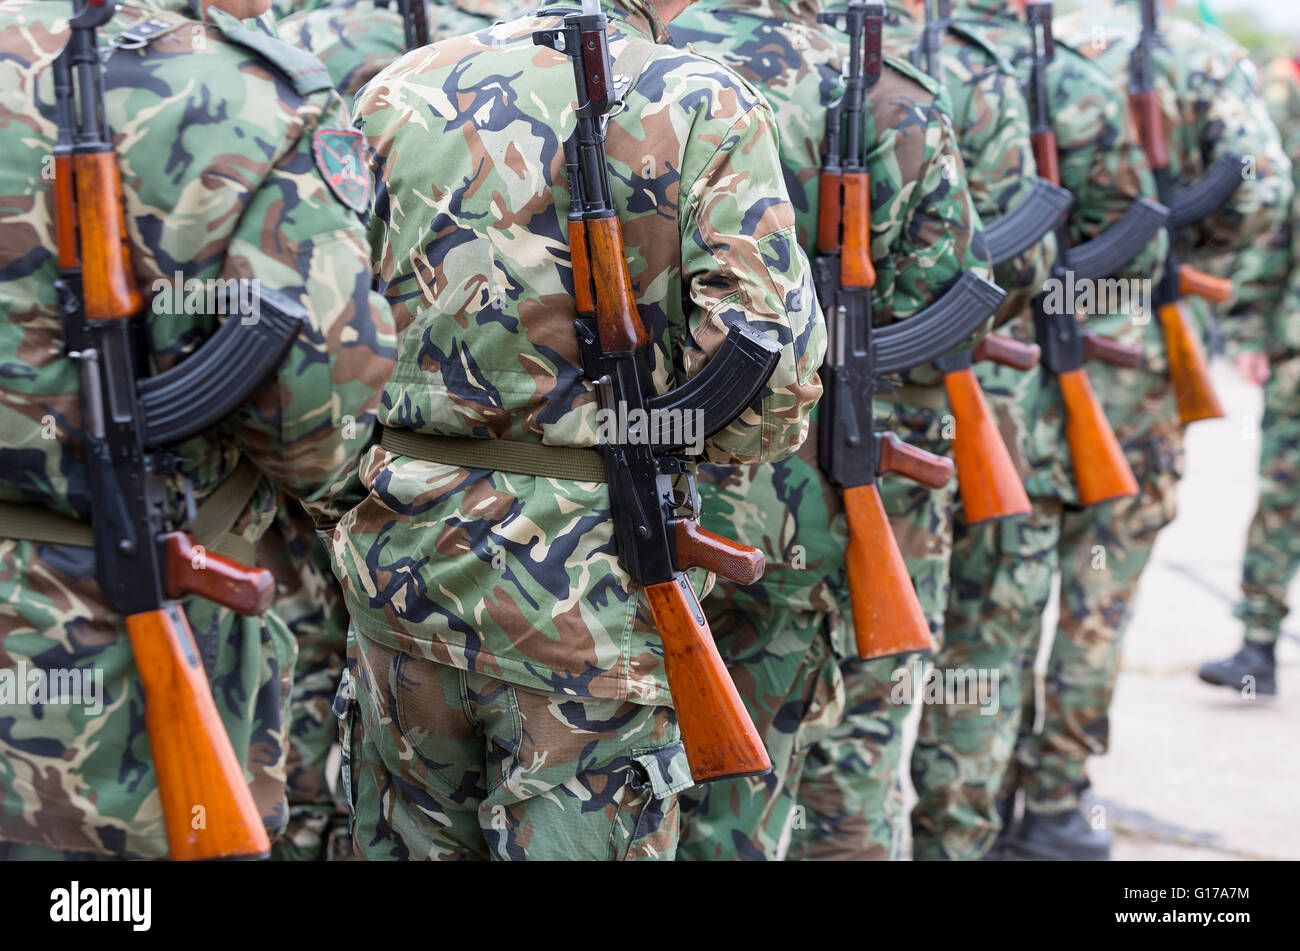 Soldiers from the Bulgarian army are preparing for a parade for Army's day in uniforms with Kalashnikov AK 47 - Stock Image